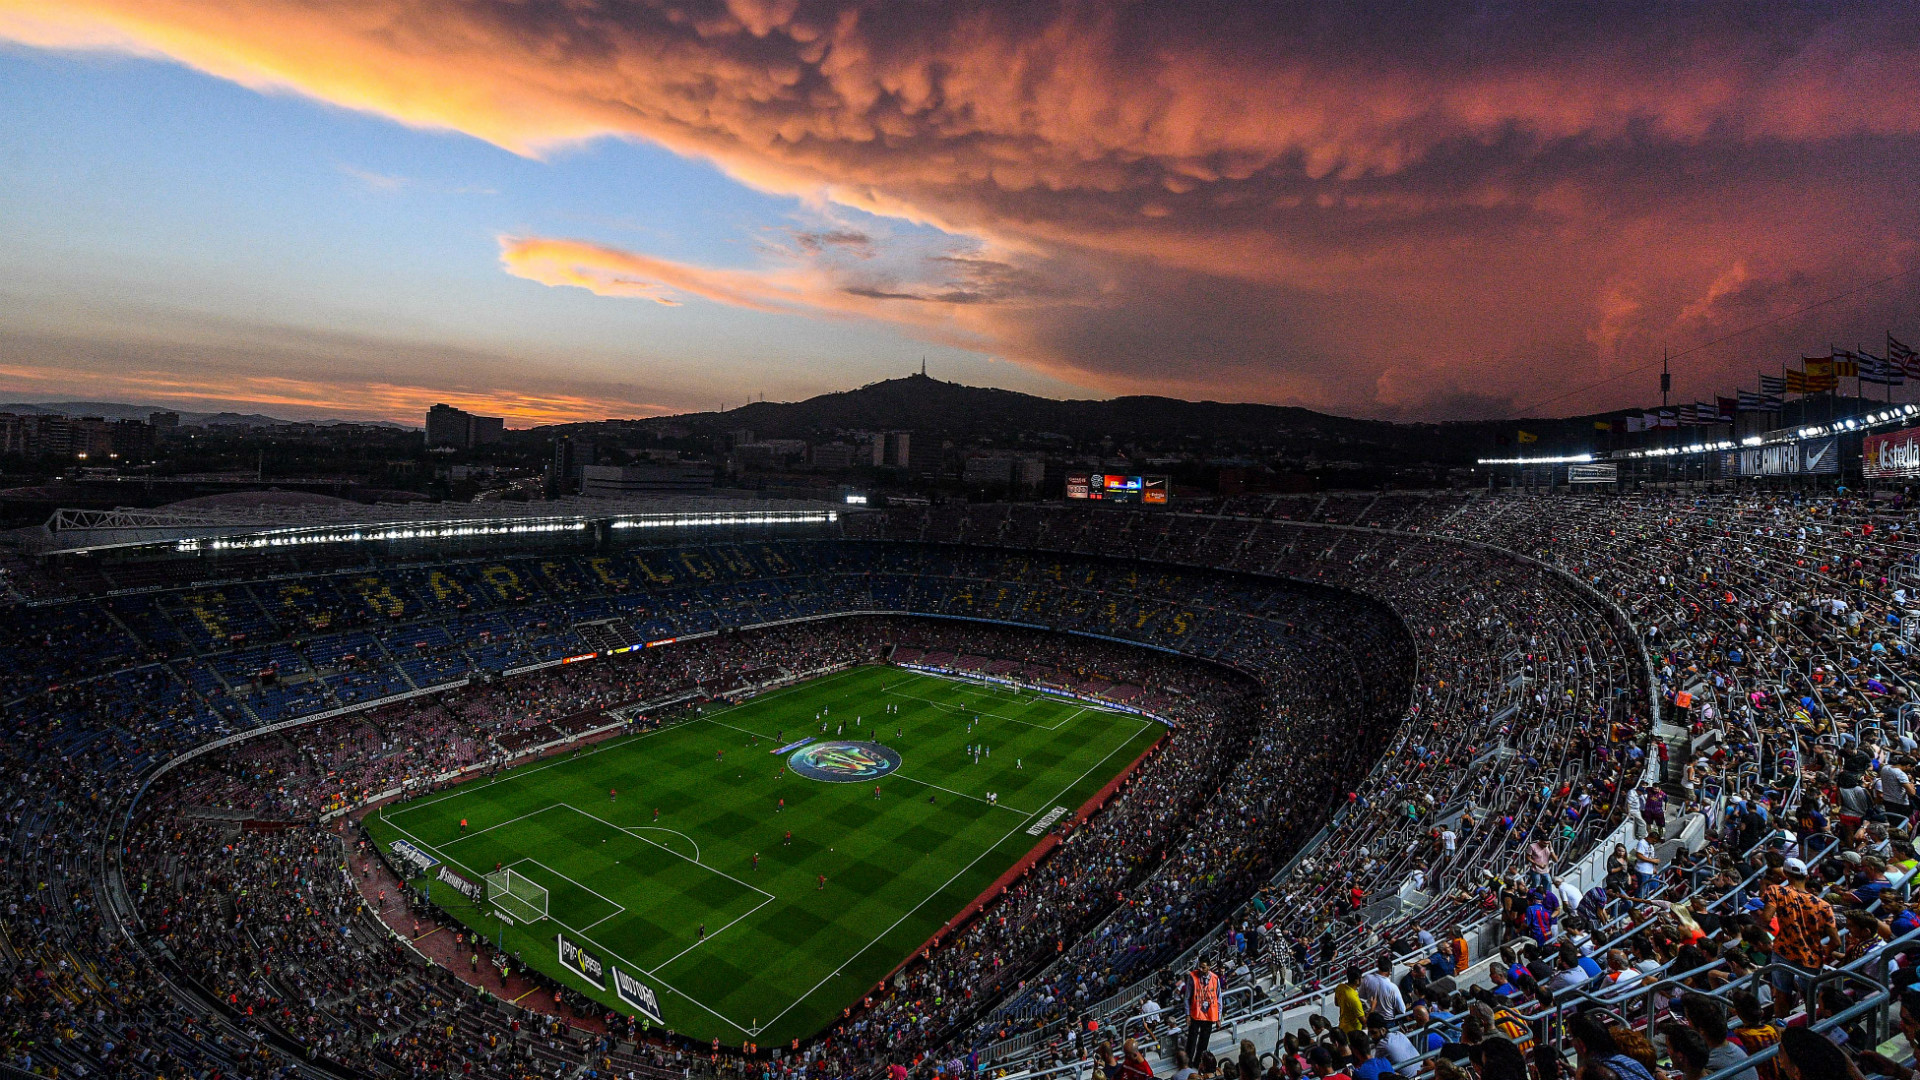 HD Camp Nou